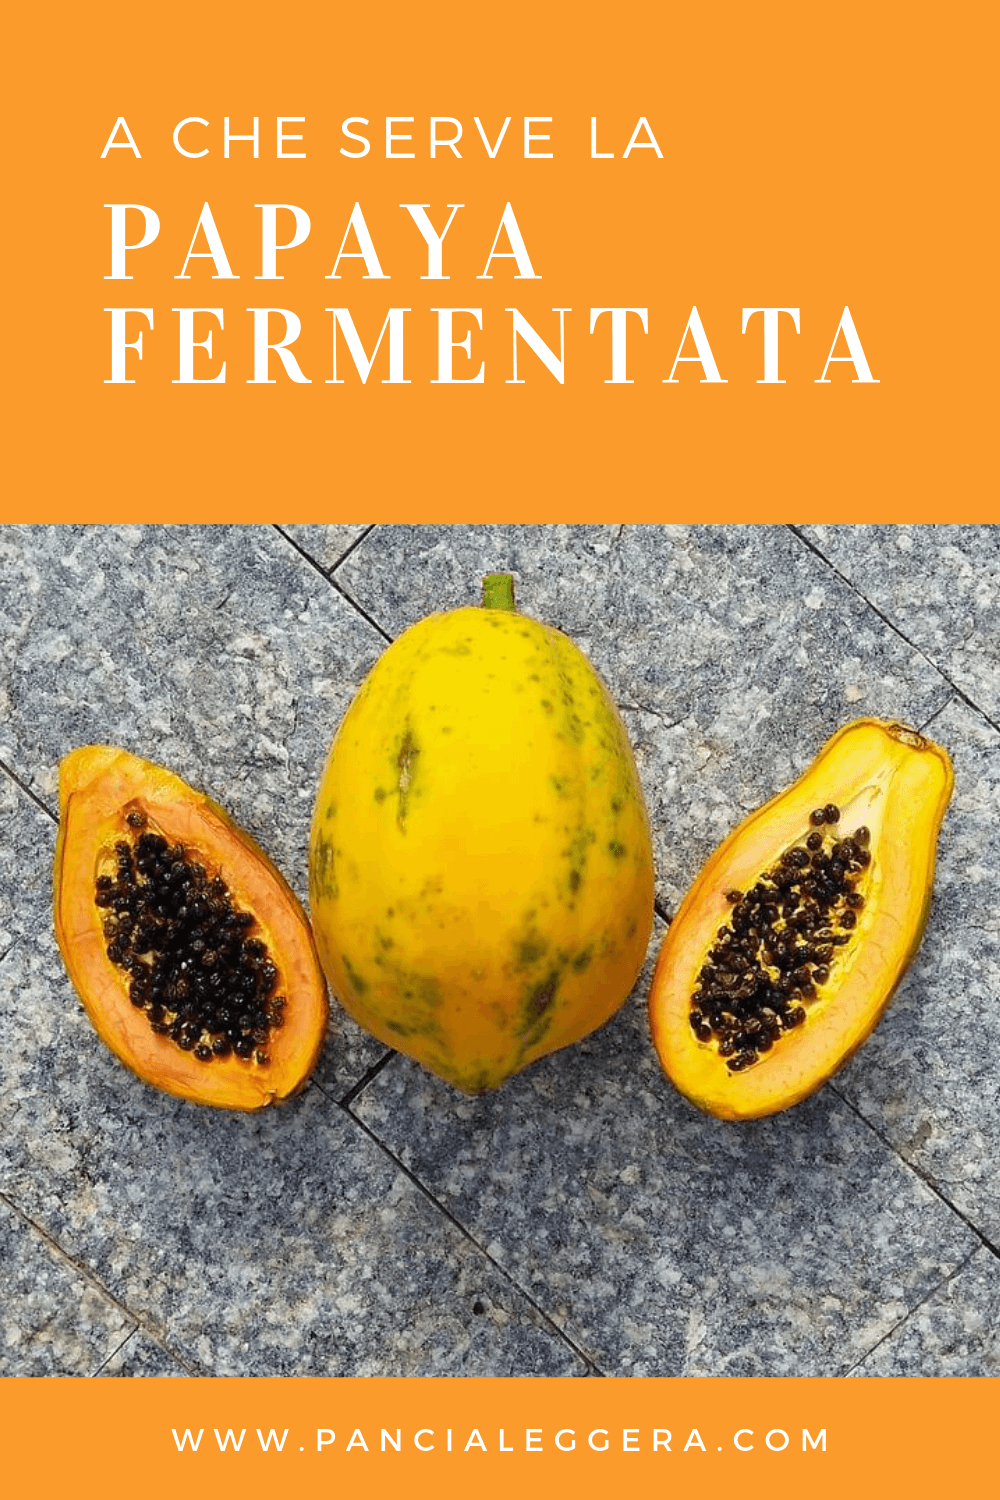 a che serve la papaya fermentata